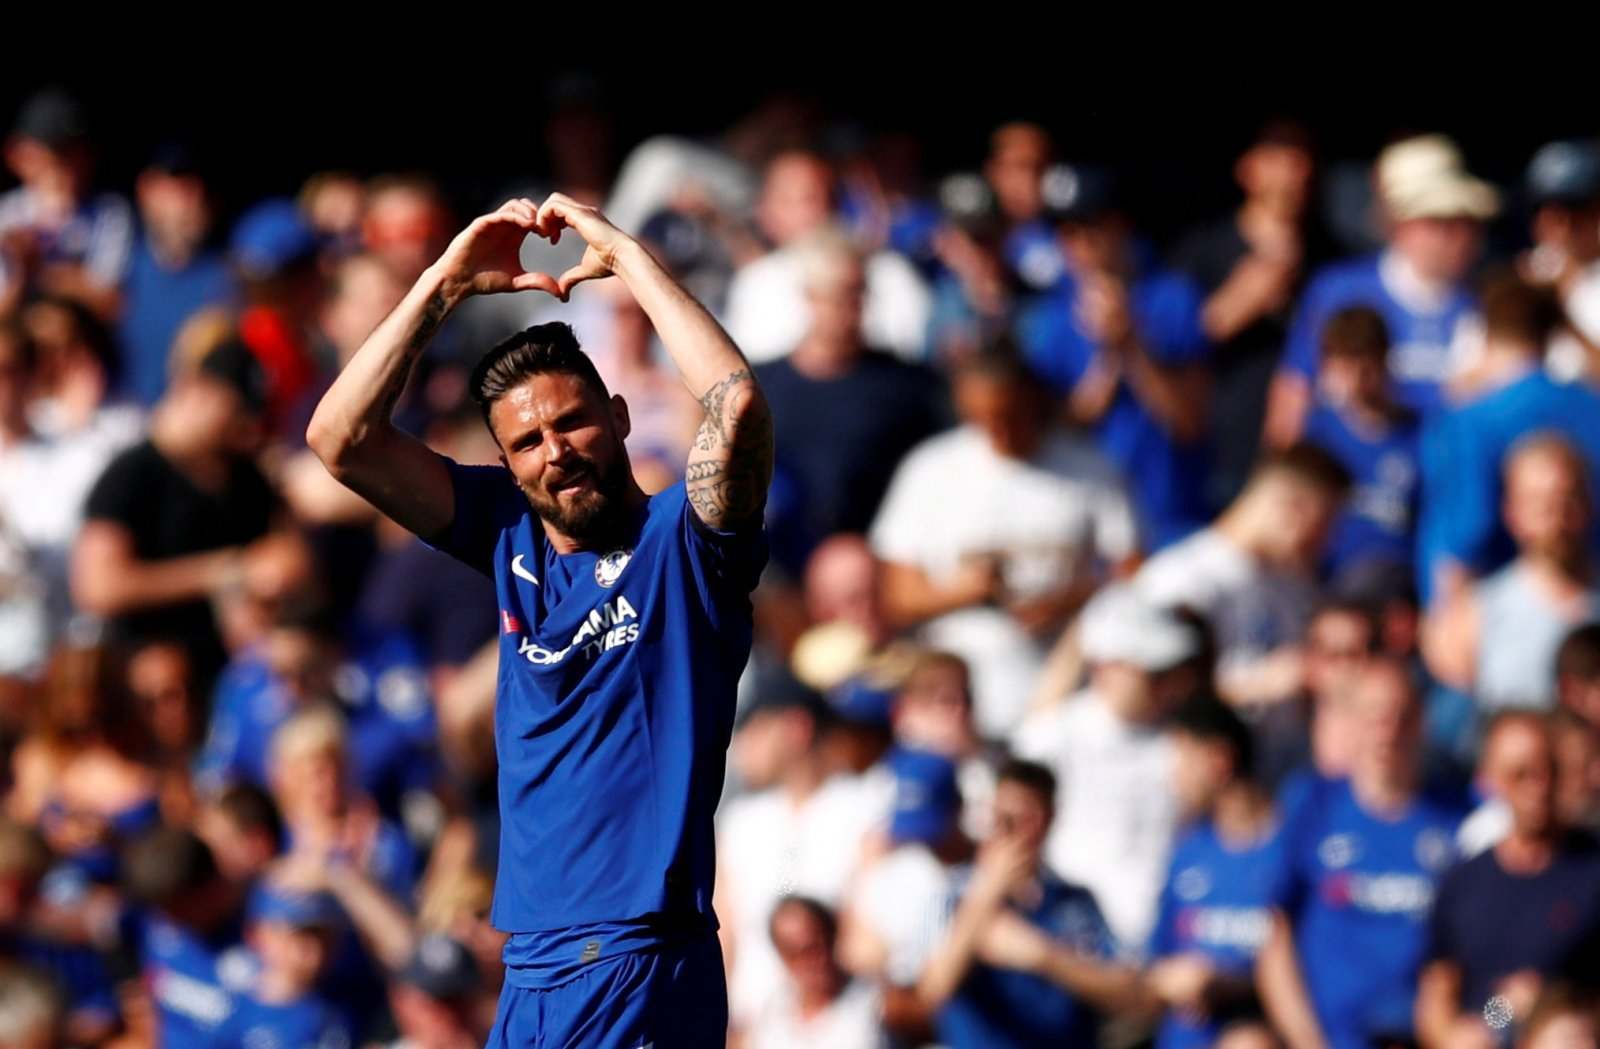 Solving problems: Sarri could make Chelsea unstoppable with this one change